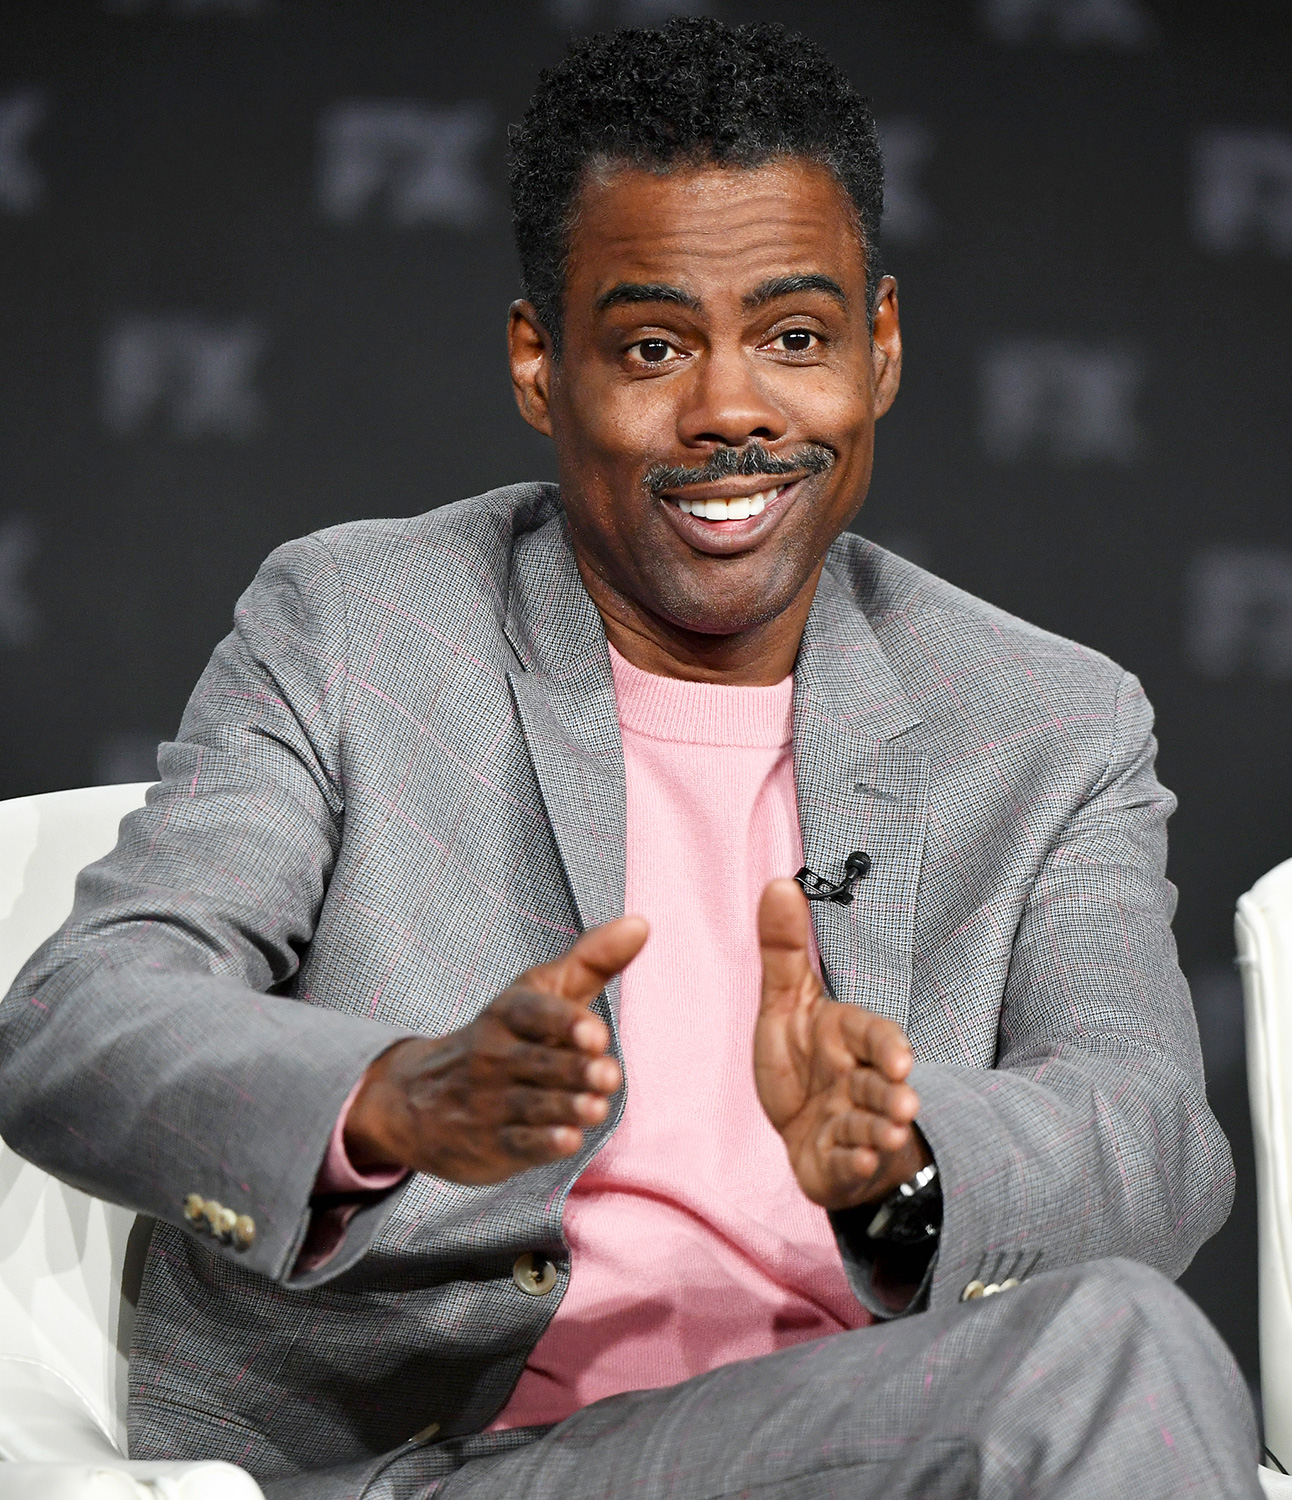 Chris Rock of 'Fargo' speaks during the FX segment of the 2020 Winter TCA Tour at The Langham Huntington, Pasadena on January 09, 2020 in Pasadena, California